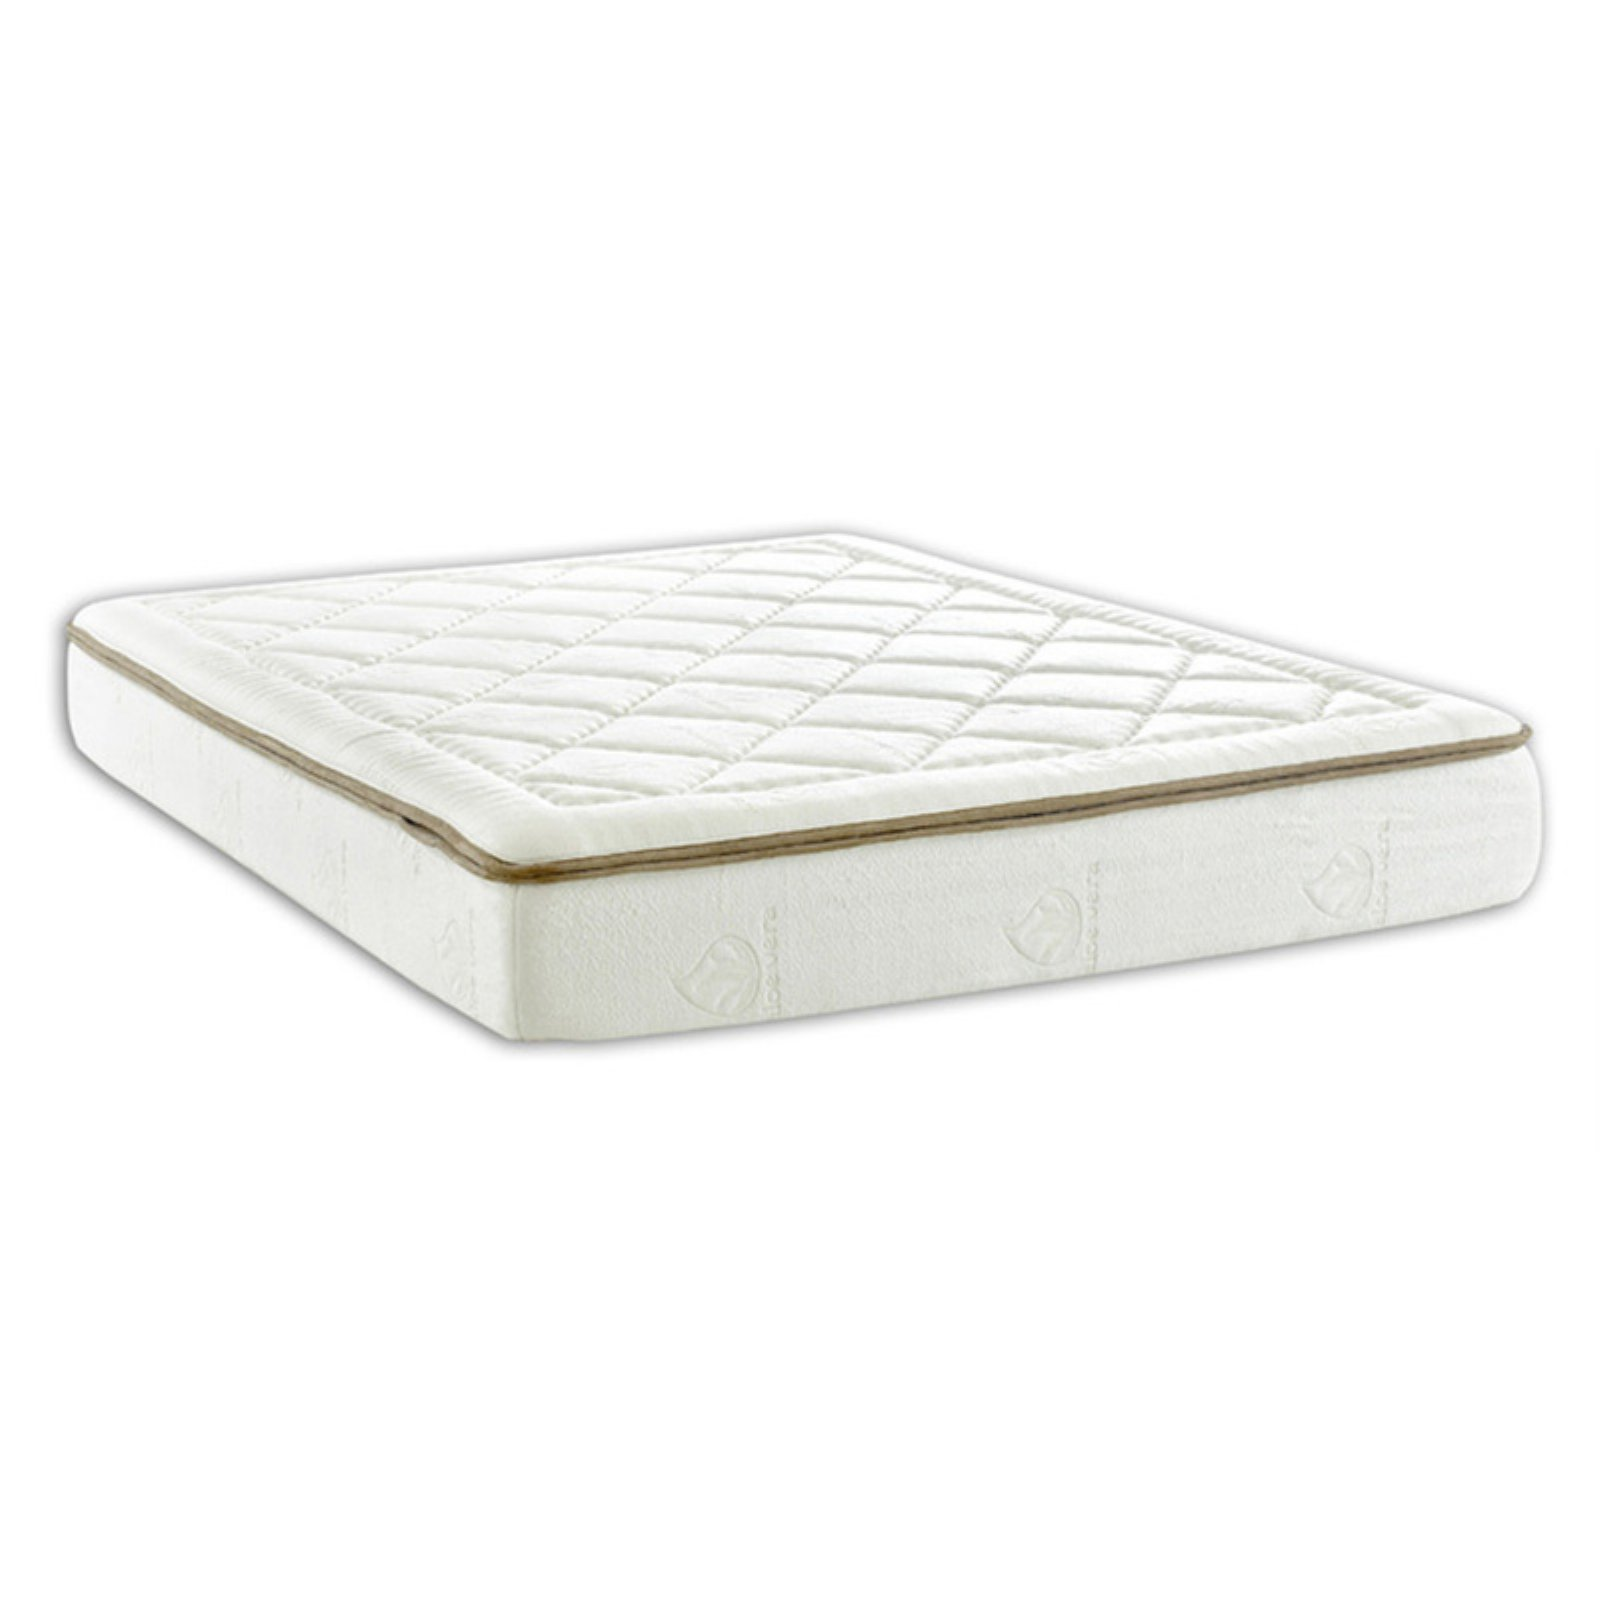 Enso Sleep System Dream Weaver Mattress by Enso by Klaussner